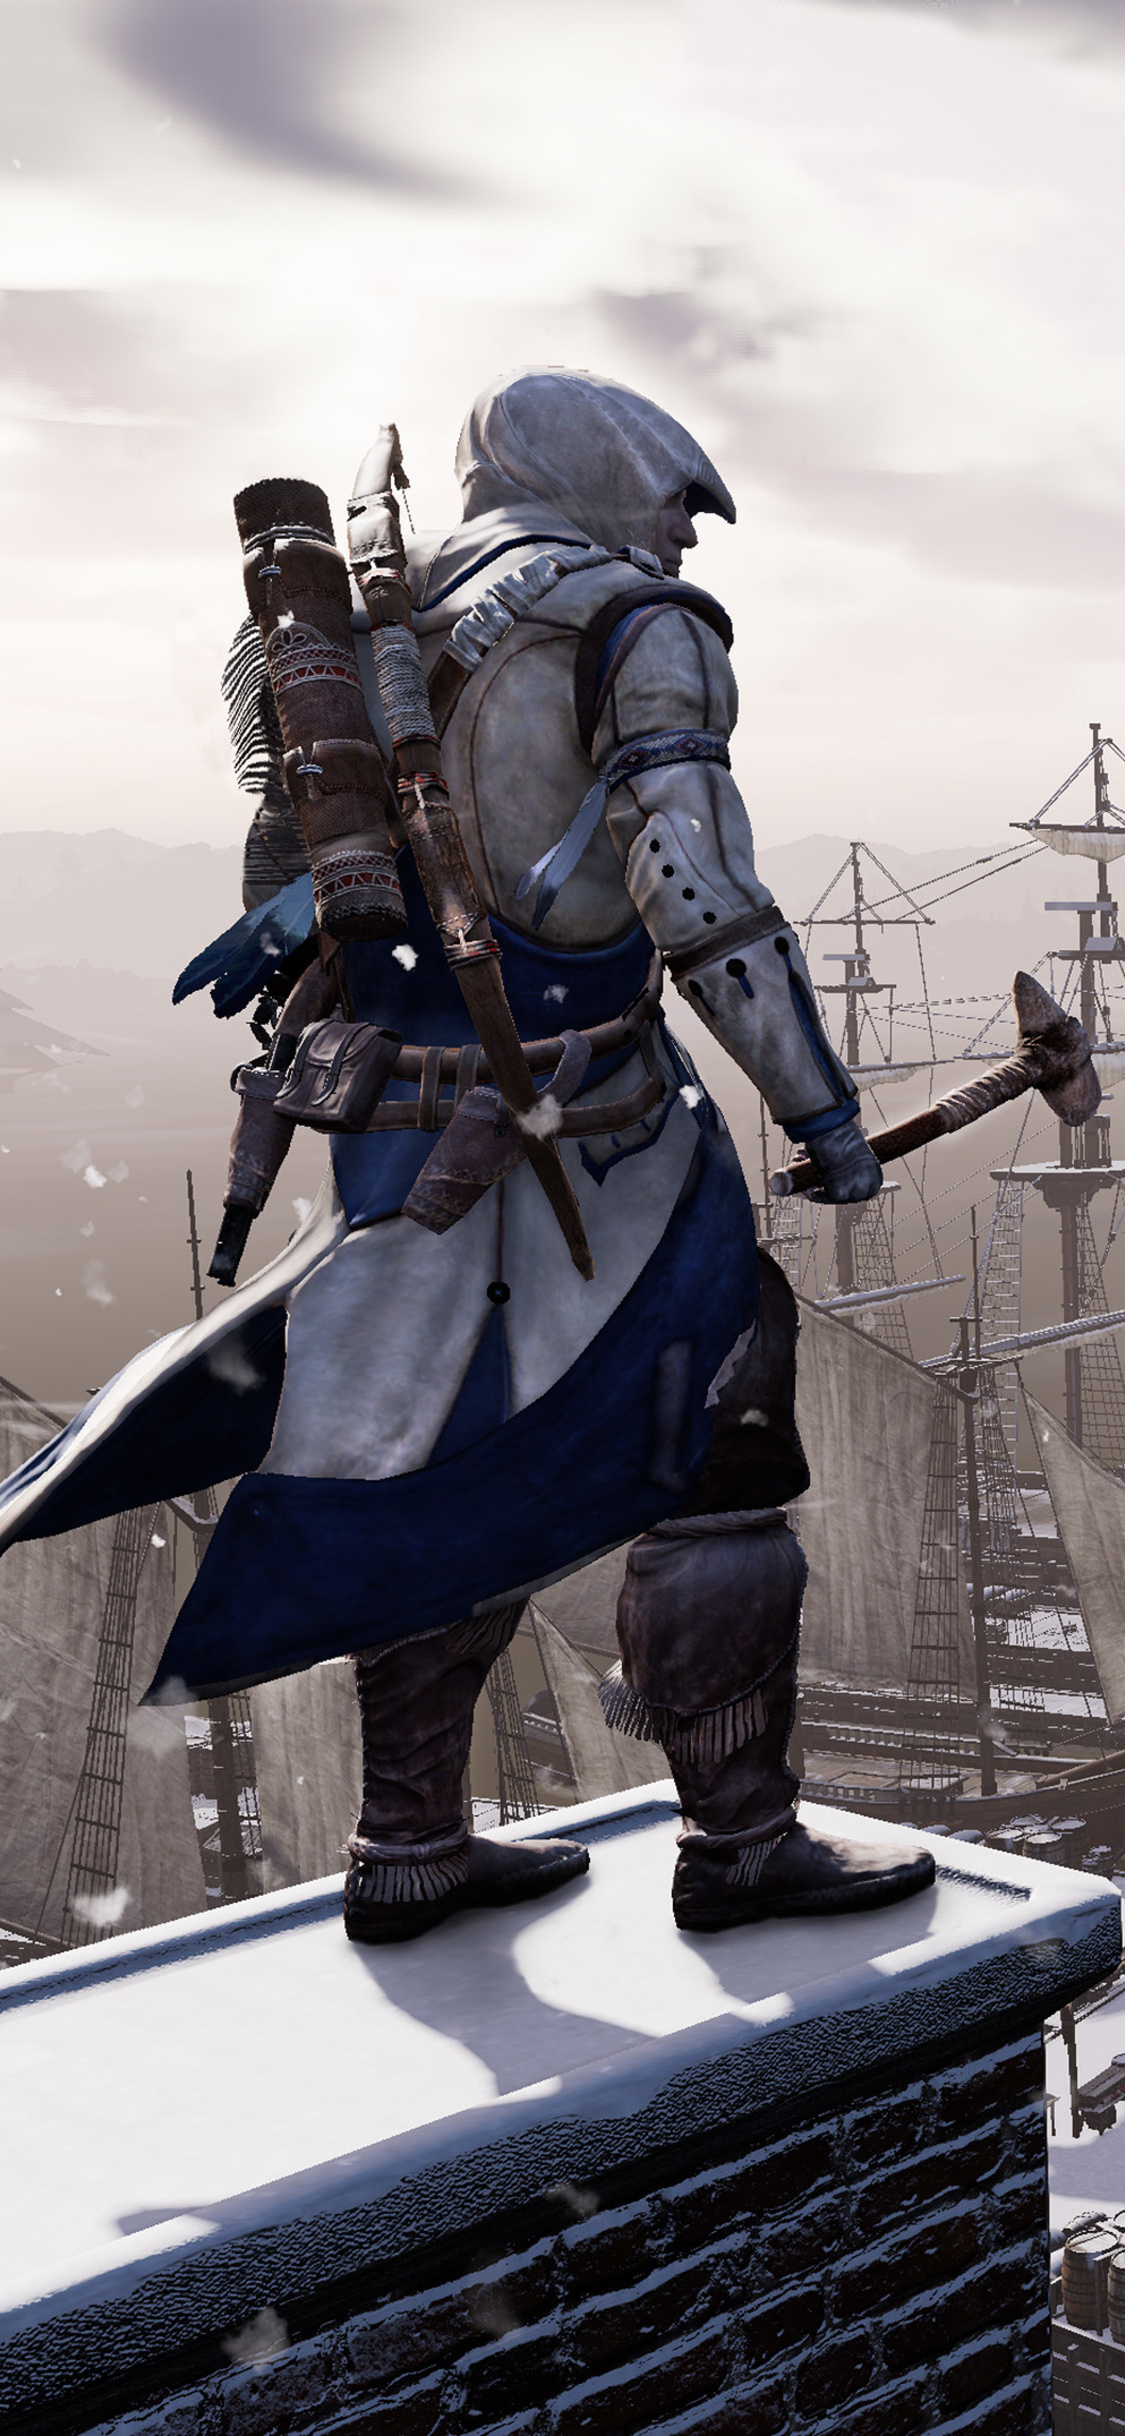 1125x2436 Assassins Creed 3 Remastered 4k Iphone Xs Iphone 10